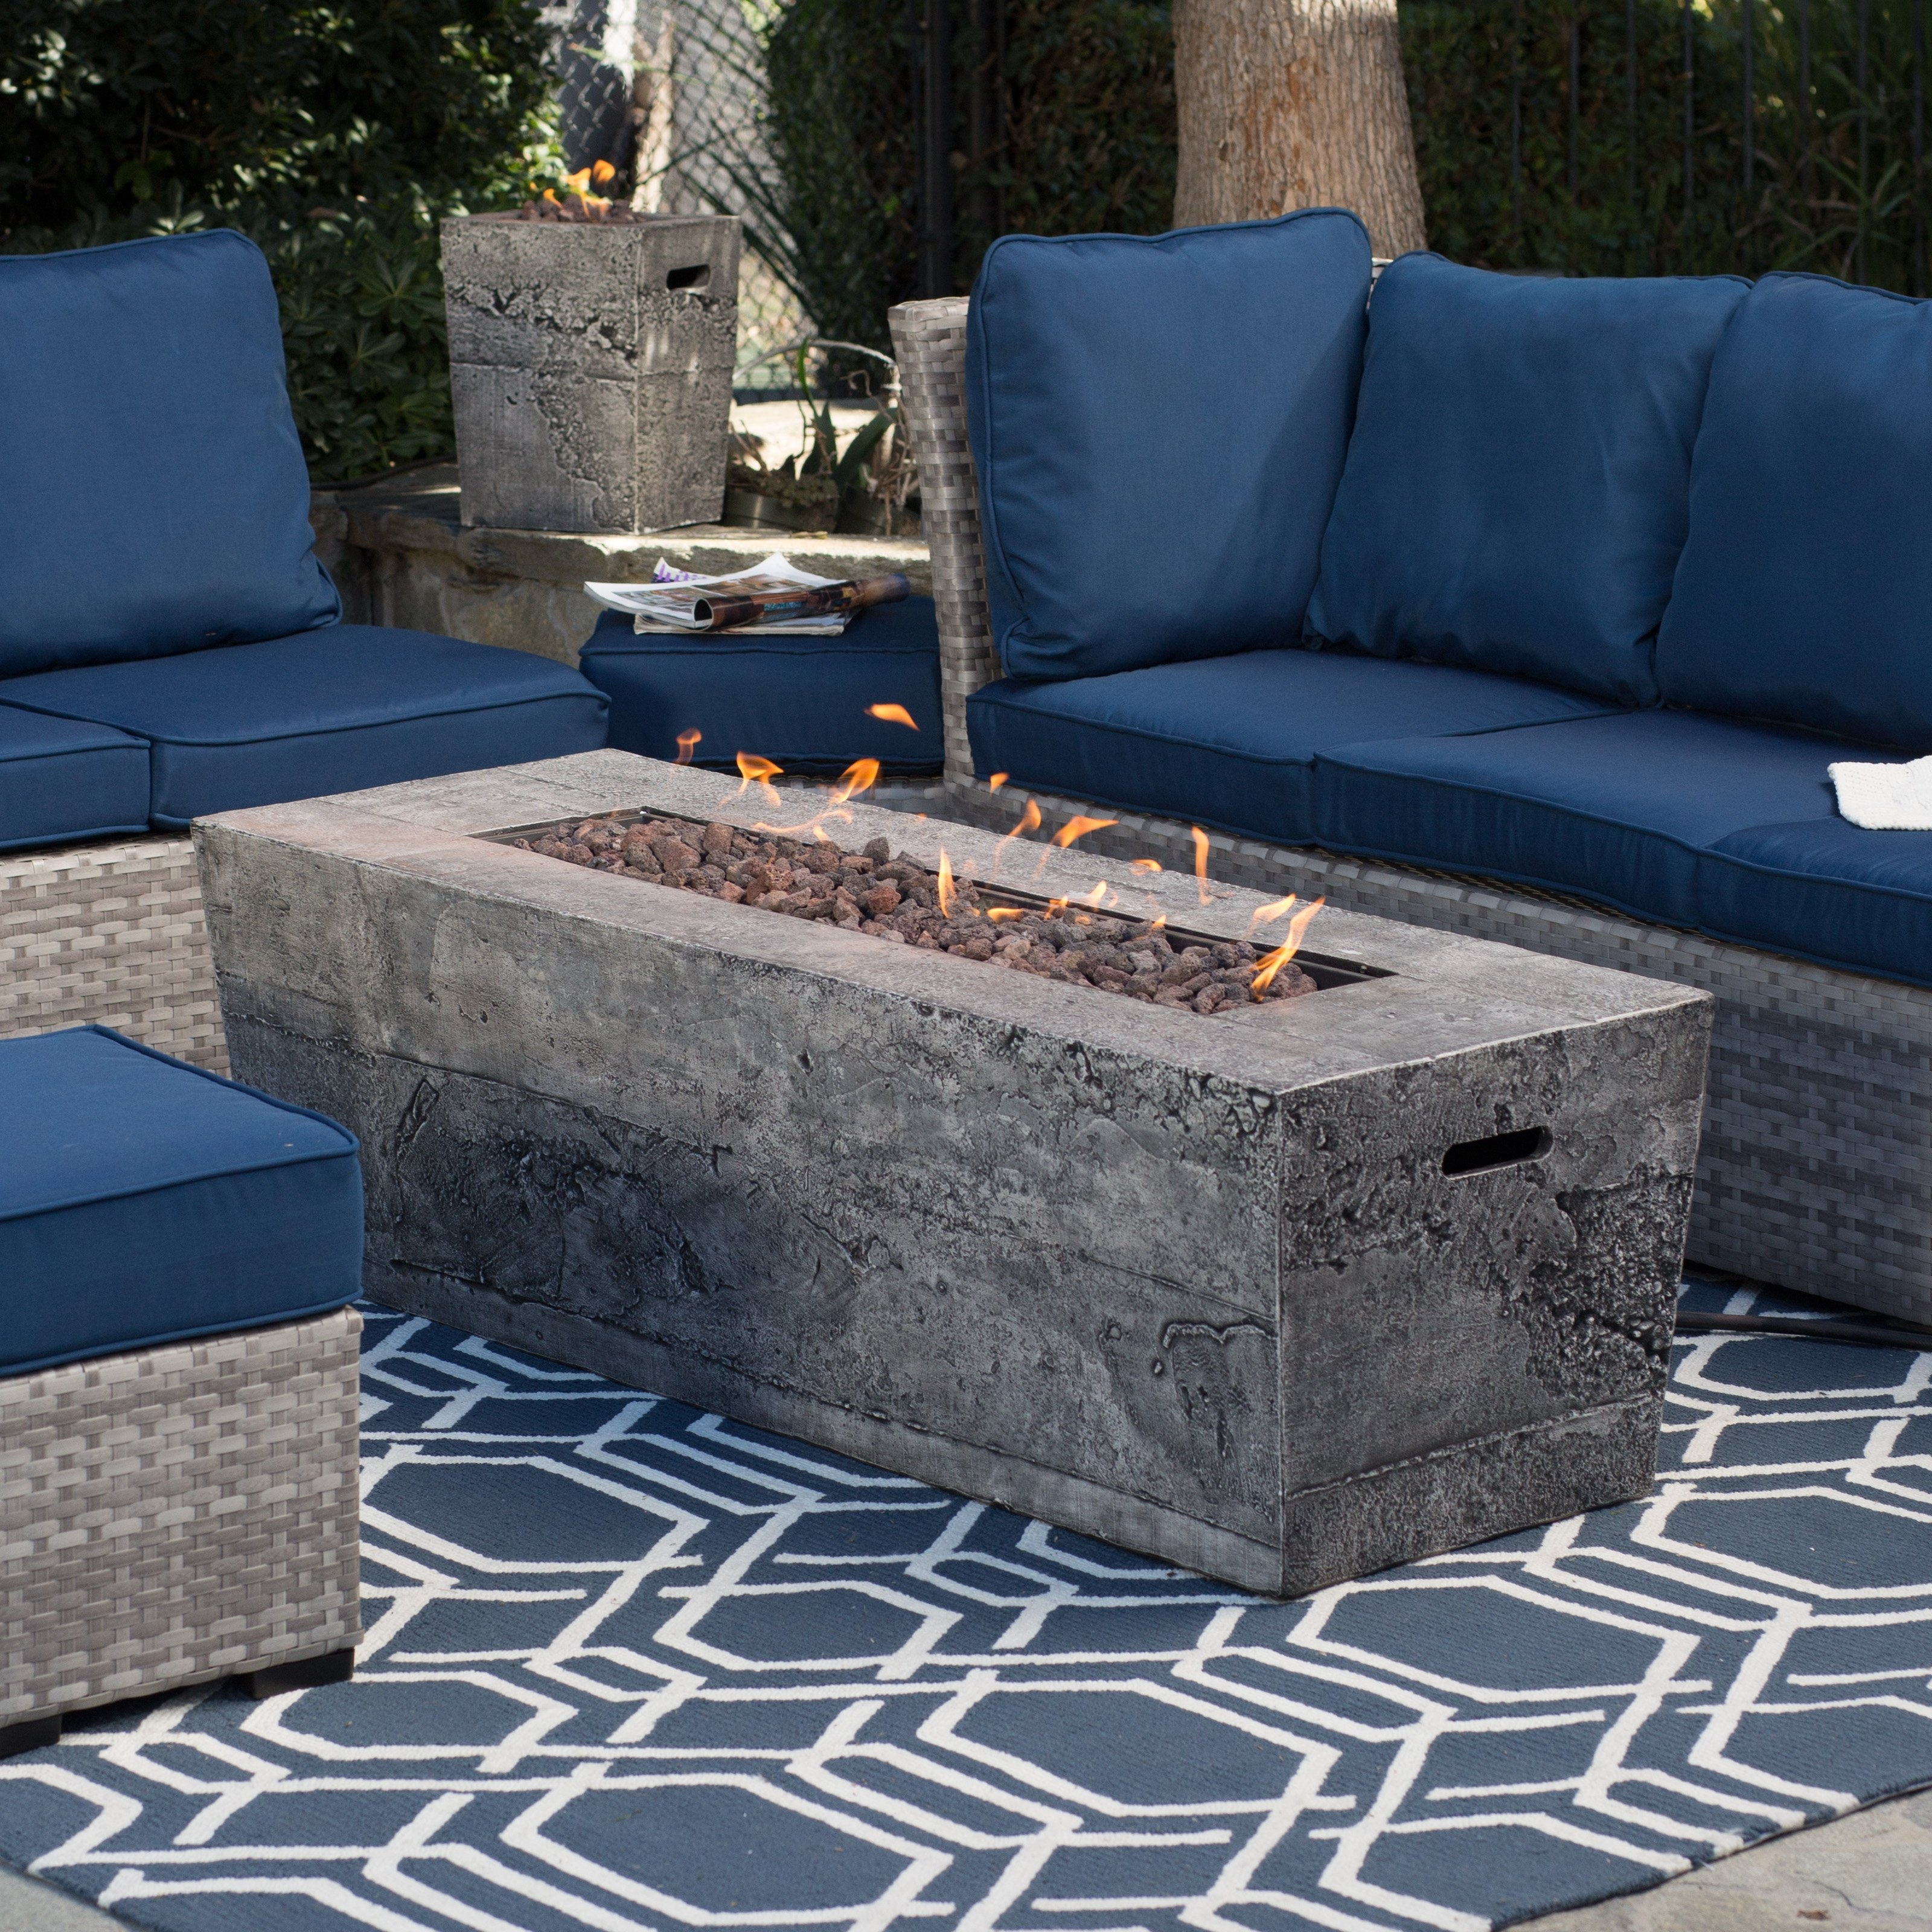 Latest Patio Conversation Sets With Gas Fire Pit Regarding Lovely Outdoor Patio Set With Gas Fire Pit Red Ember Glacier Stone (View 8 of 20)